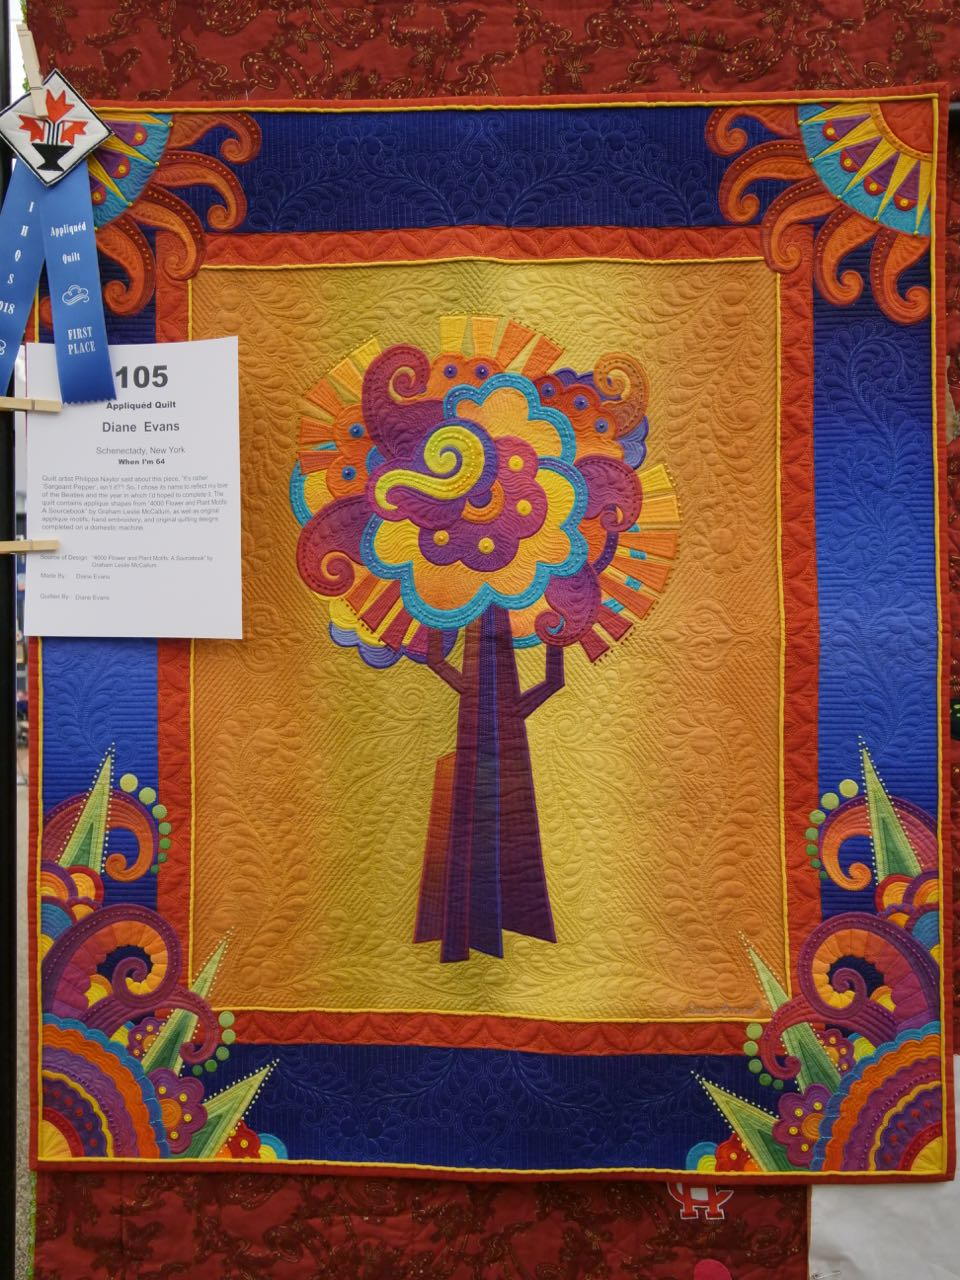 When I'm 64 - 1st Place, Appliquéd Quilts